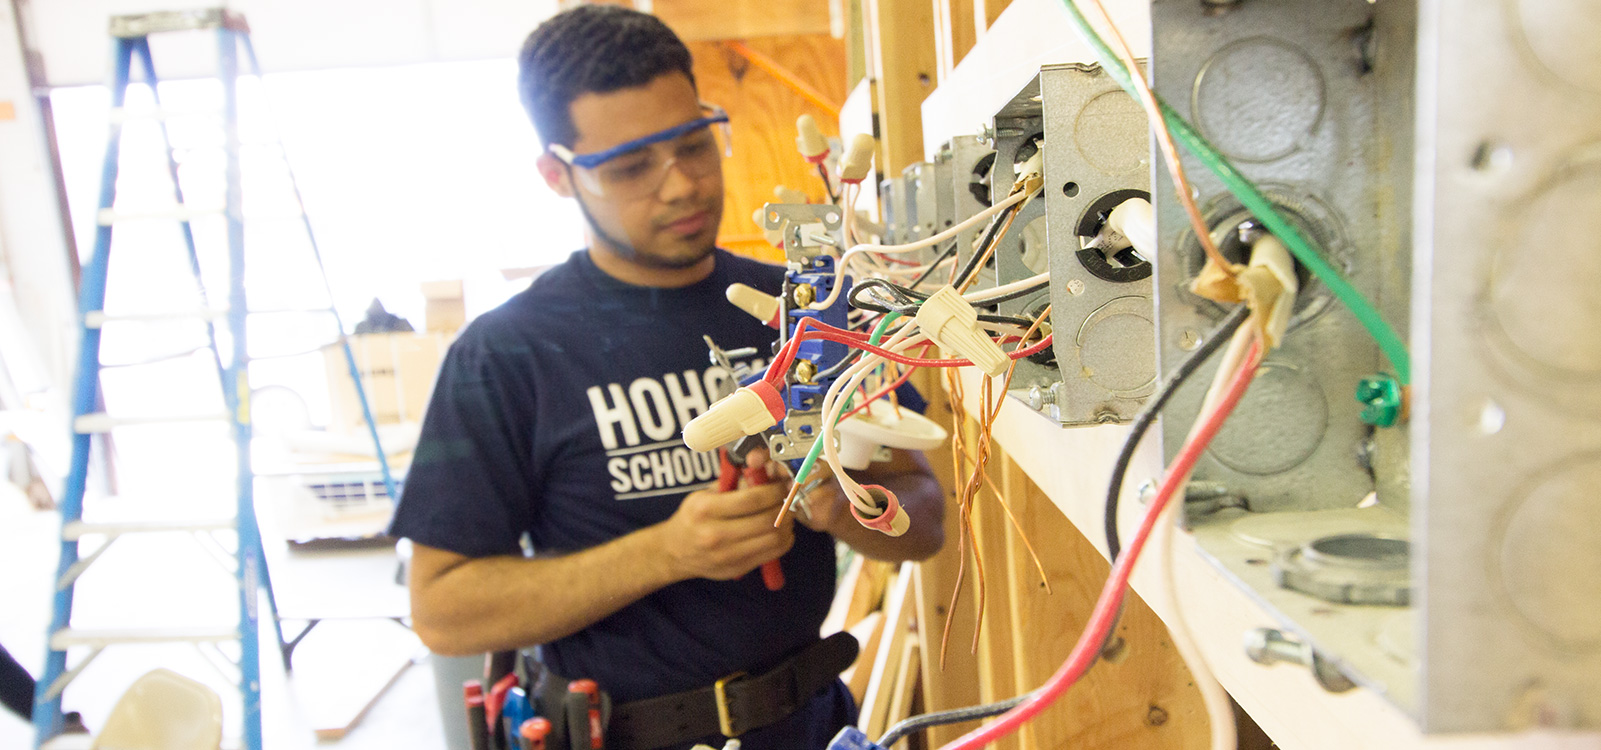 photo-header-program-electrician-training-hohokus-school-eastwick-college